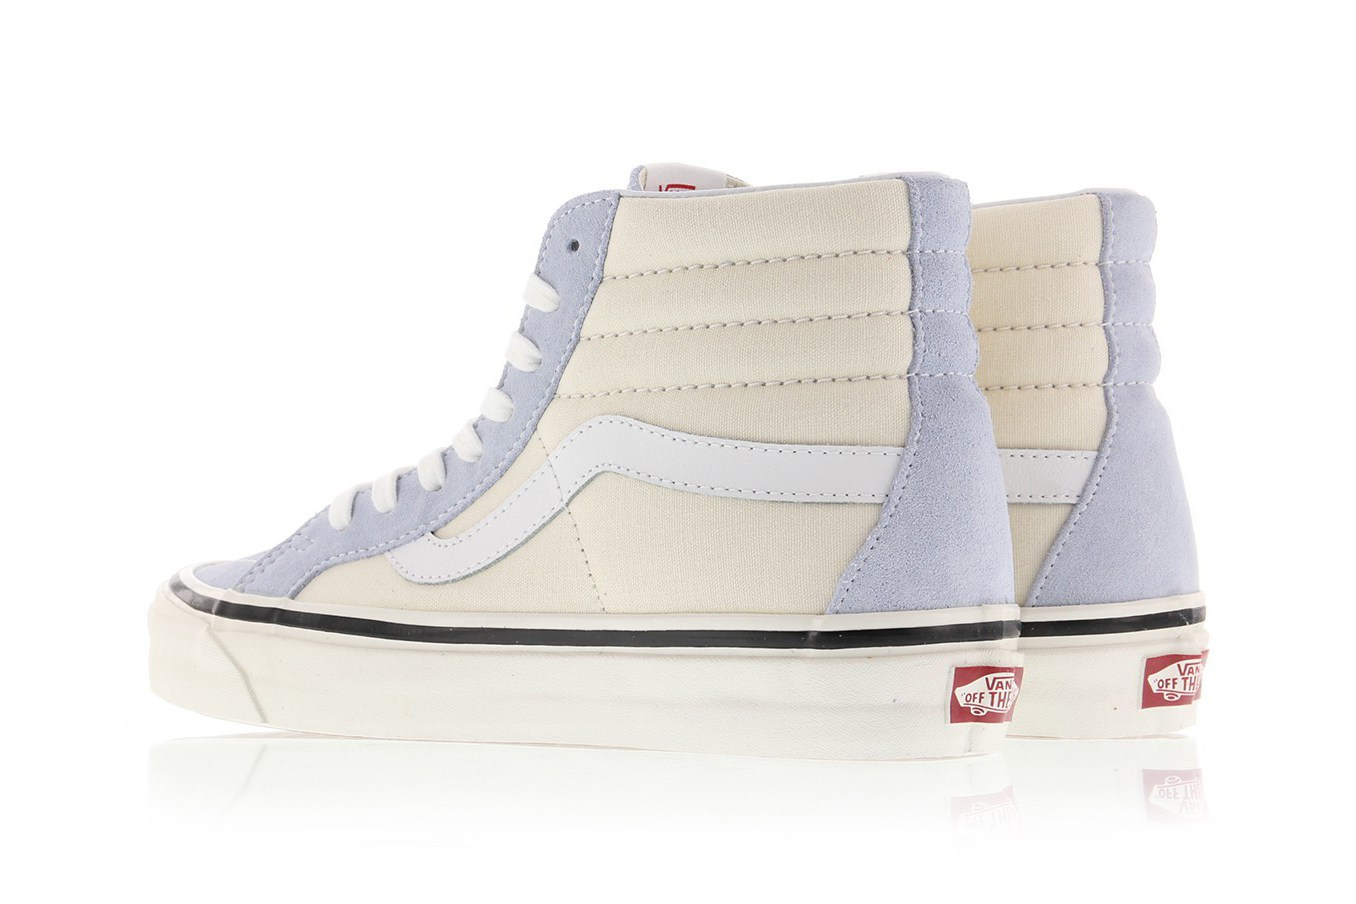 vans-sk8-hi-dx-light-blue-white-1